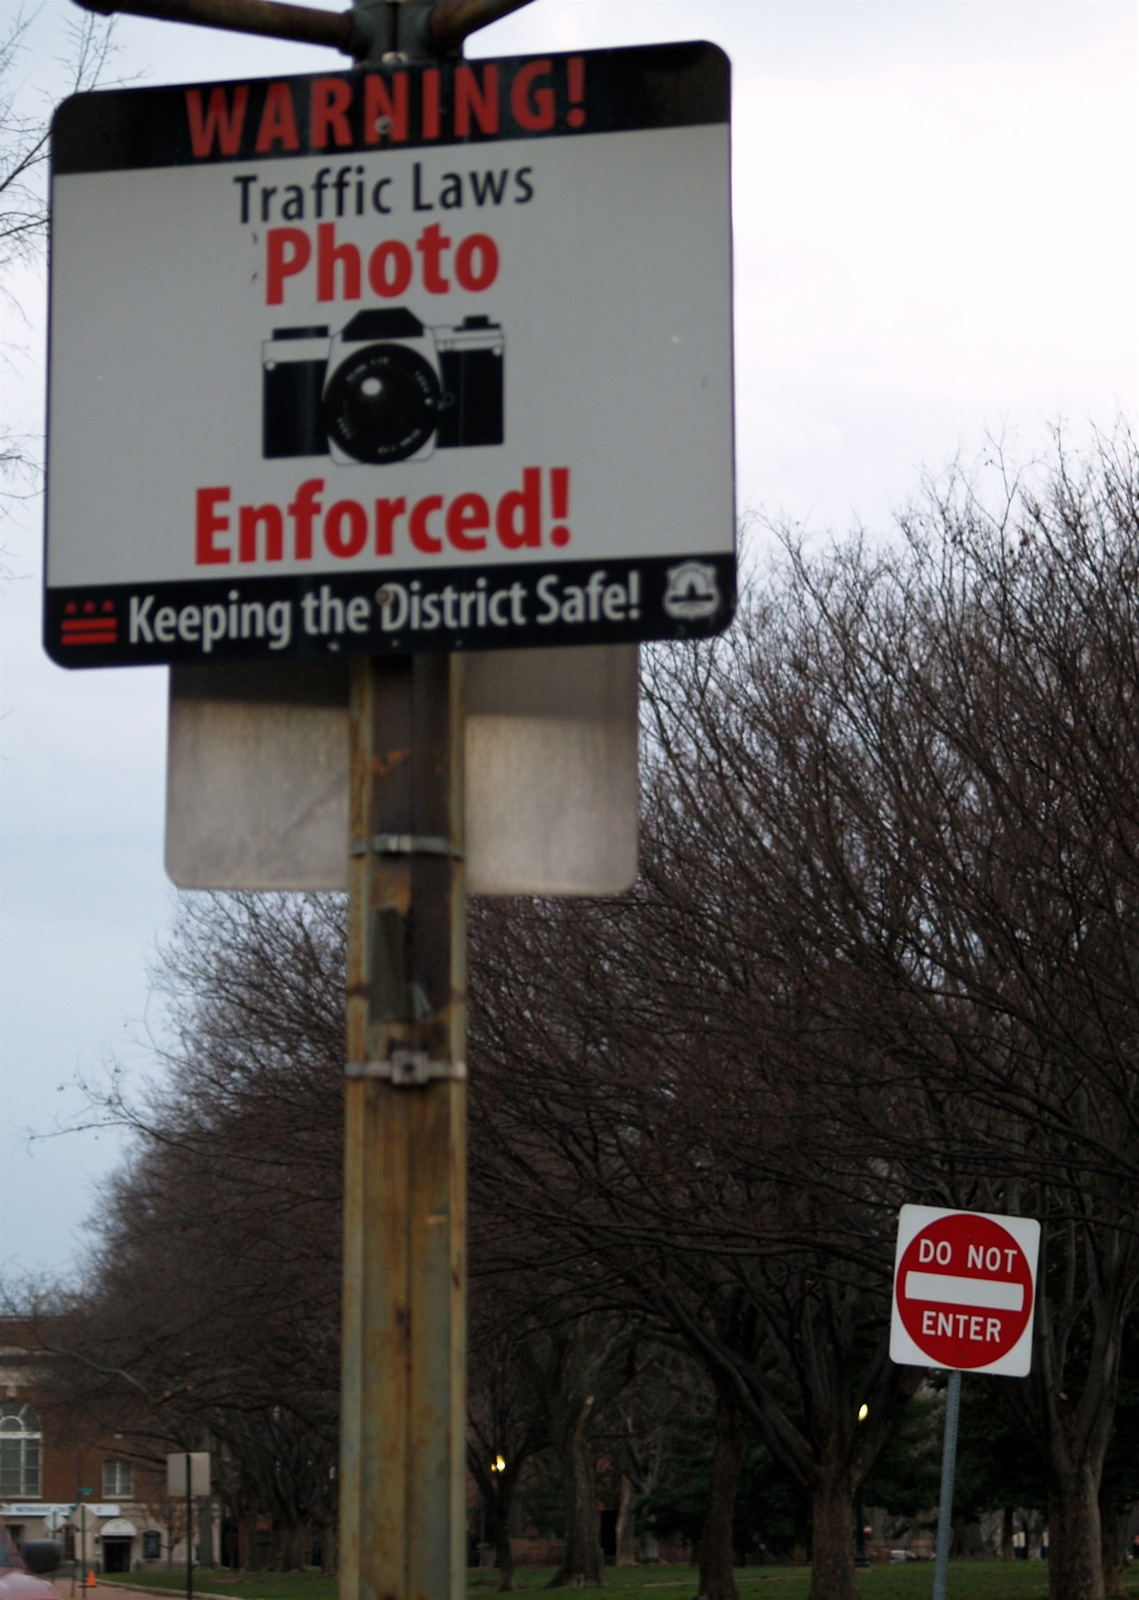 are law enforcement cameras an invasion of privacy